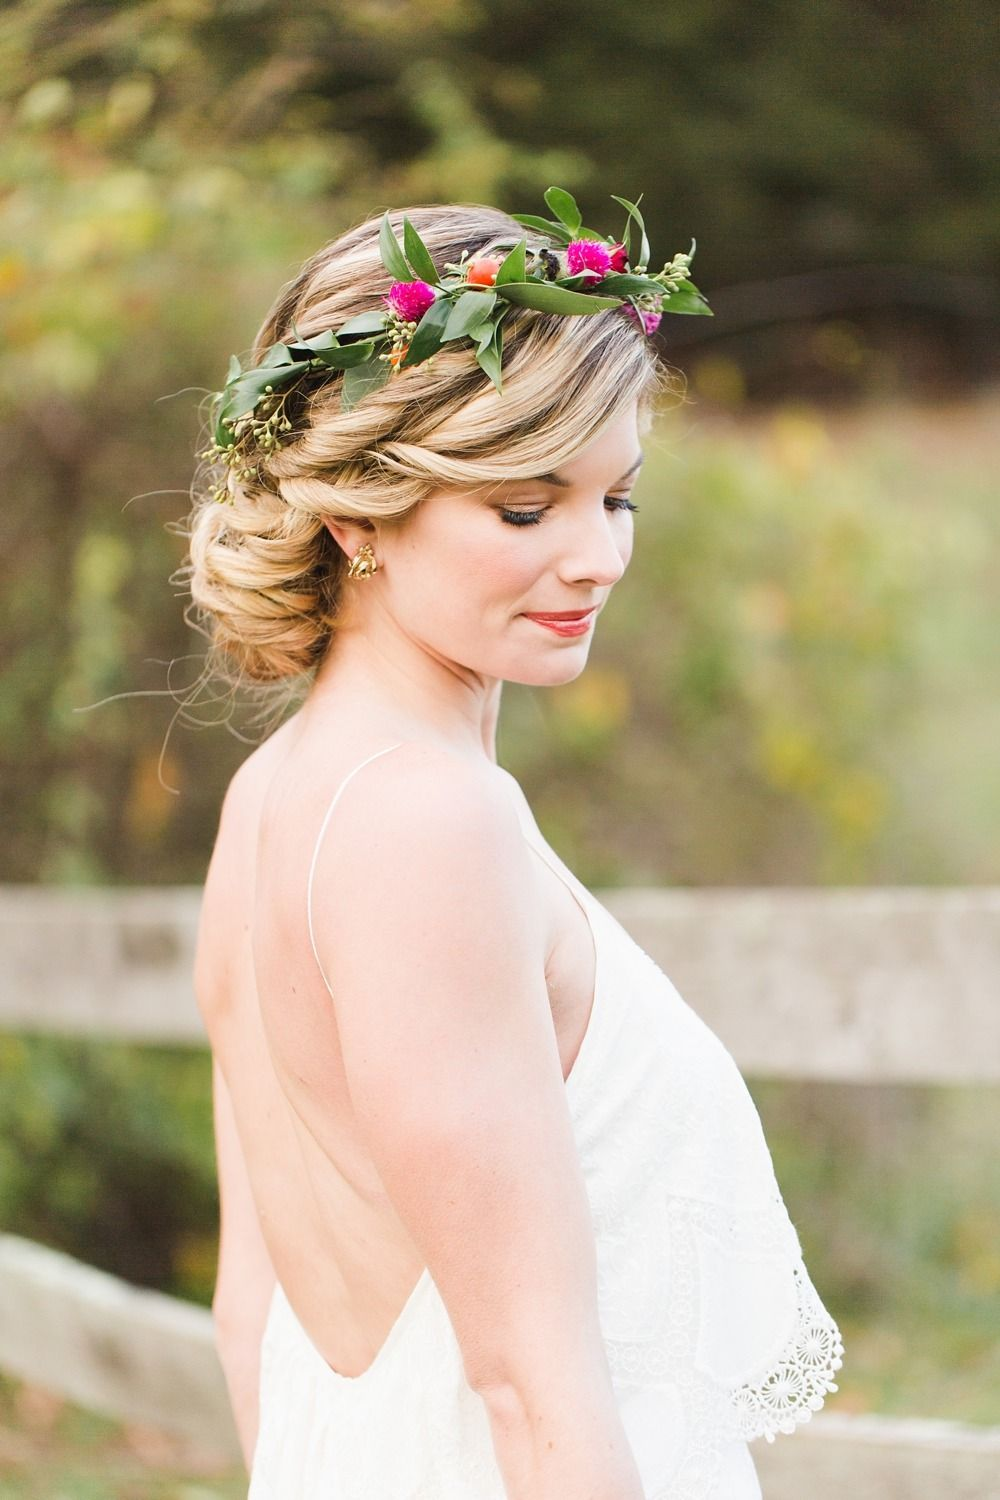 Late fall floral crown inspiration | Photography: Ashley Caroline Photography - www.ashley-caroline.com  Read More: http://www.stylemepretty.com/2015/02/10/colorful-late-fall-countryside-inspiration-shoot/